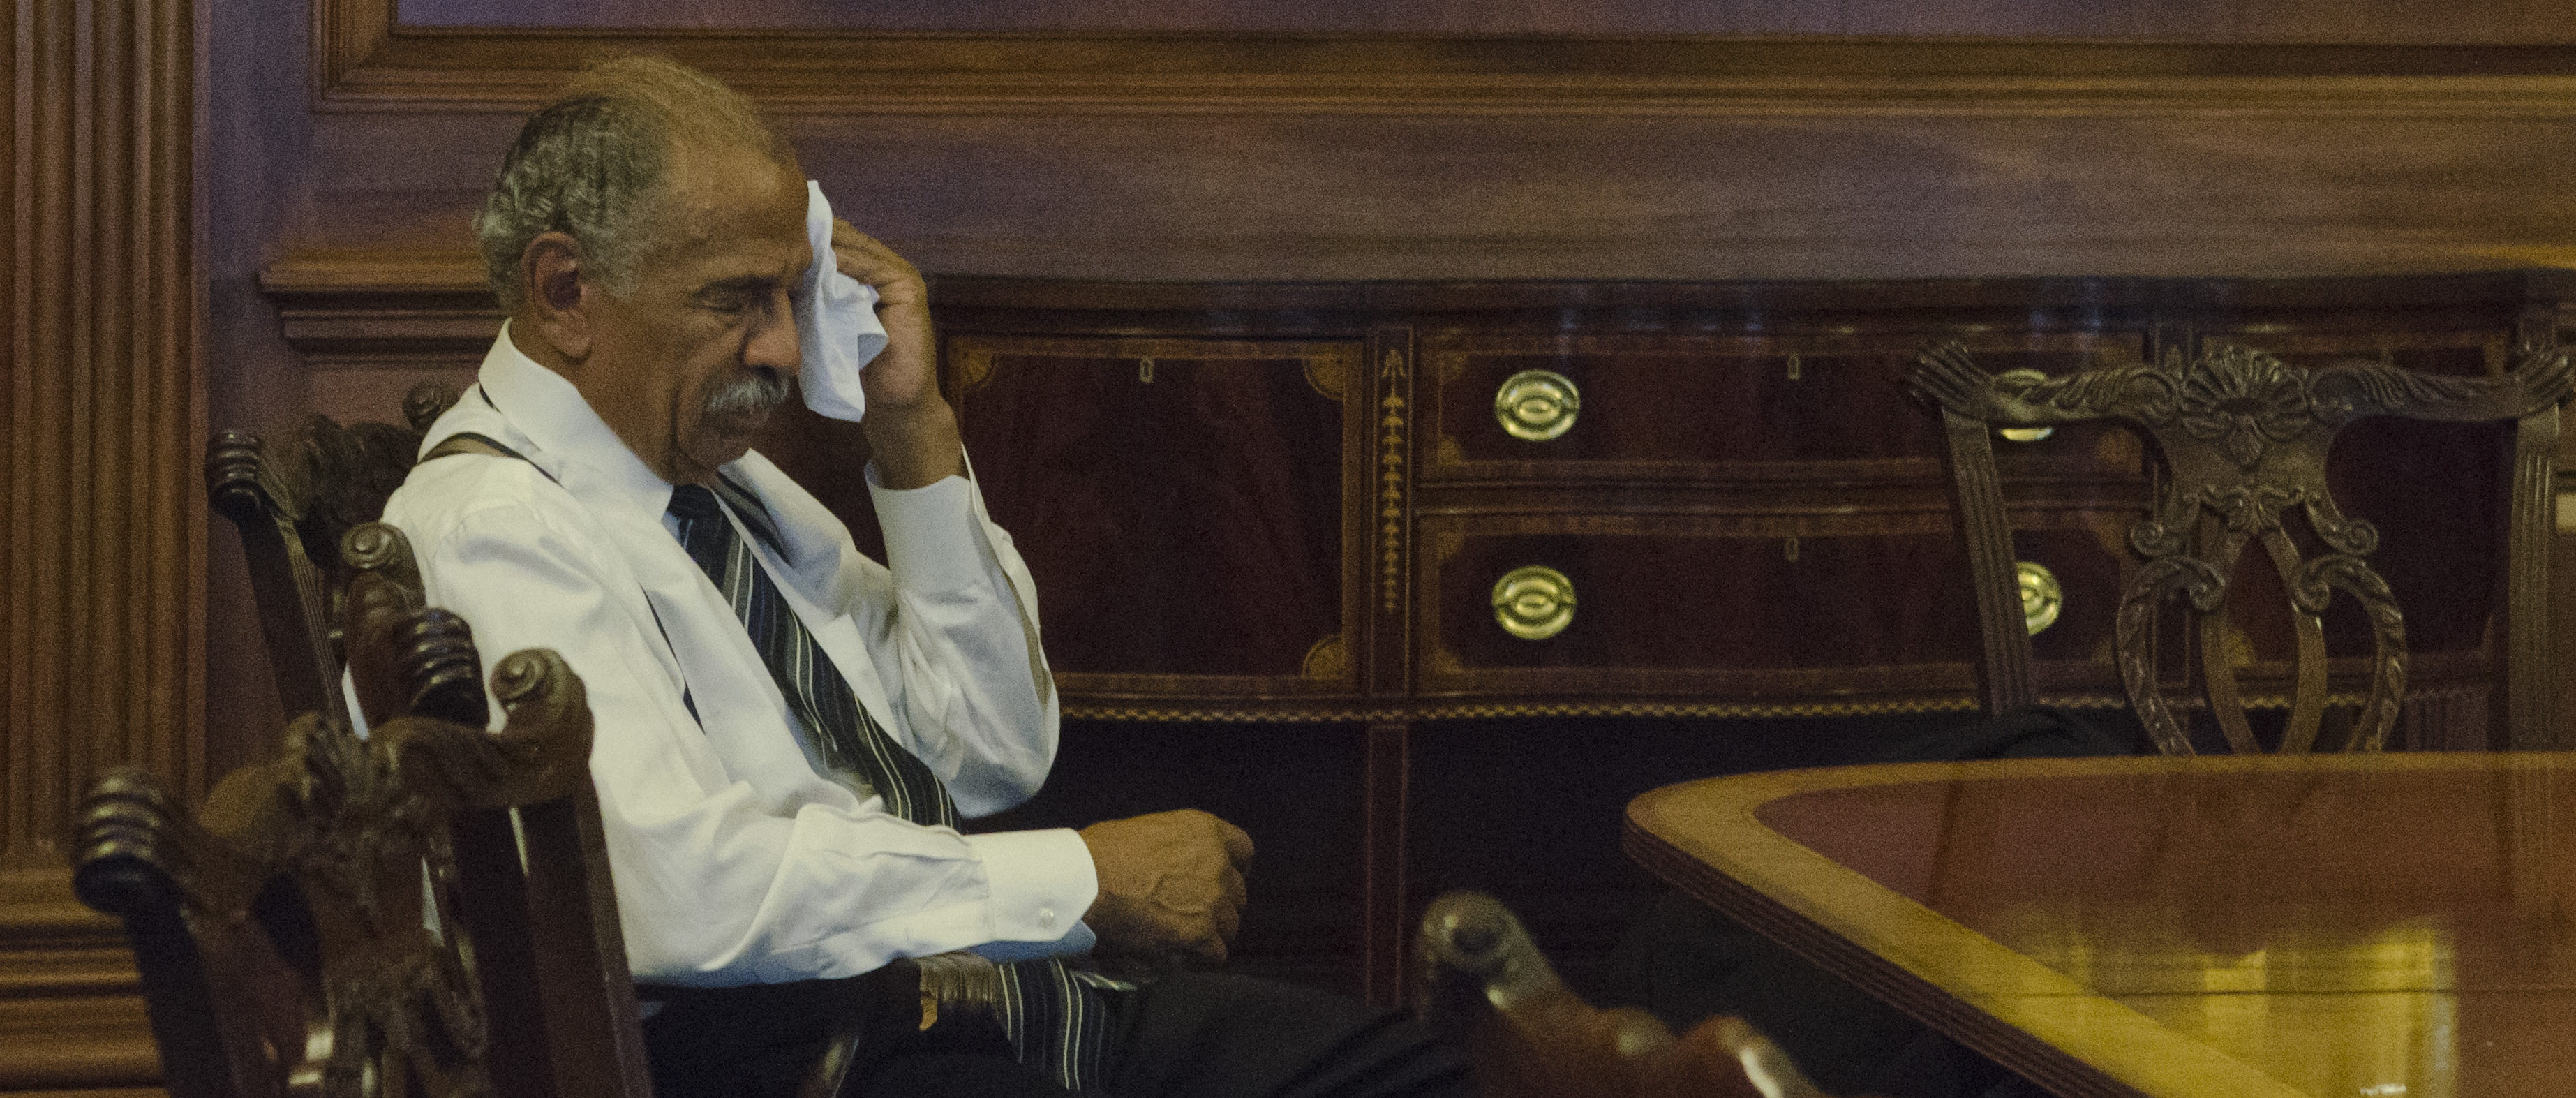 John Conyers (Getty Images)